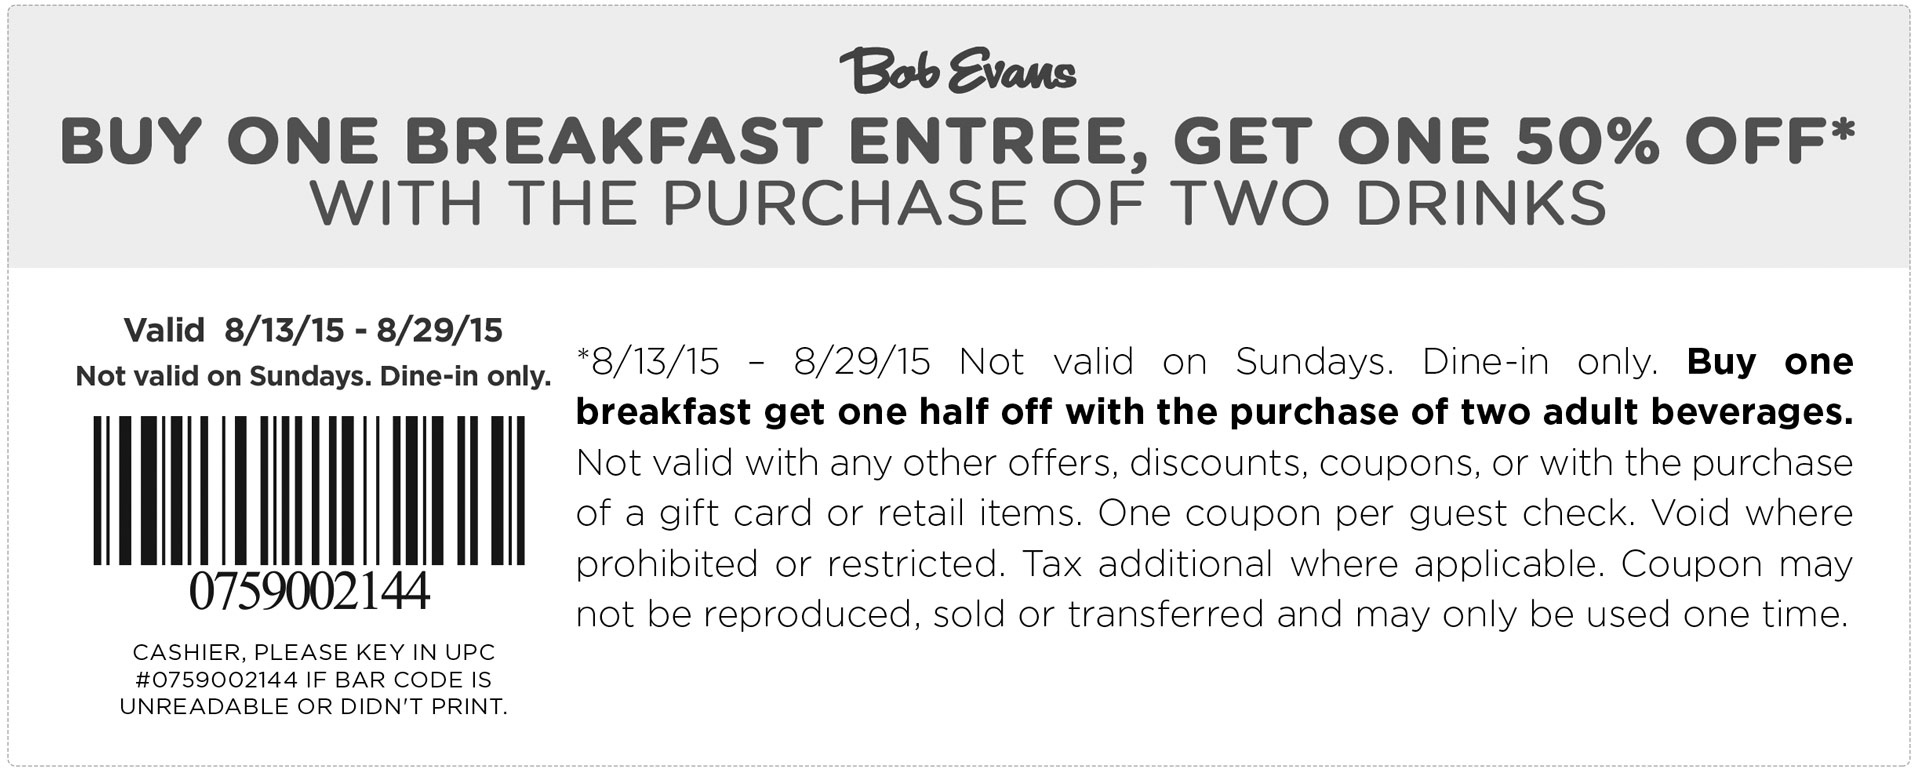 Bob Evans Coupon February 2019 Second breakfast 50% off at Bob Evans